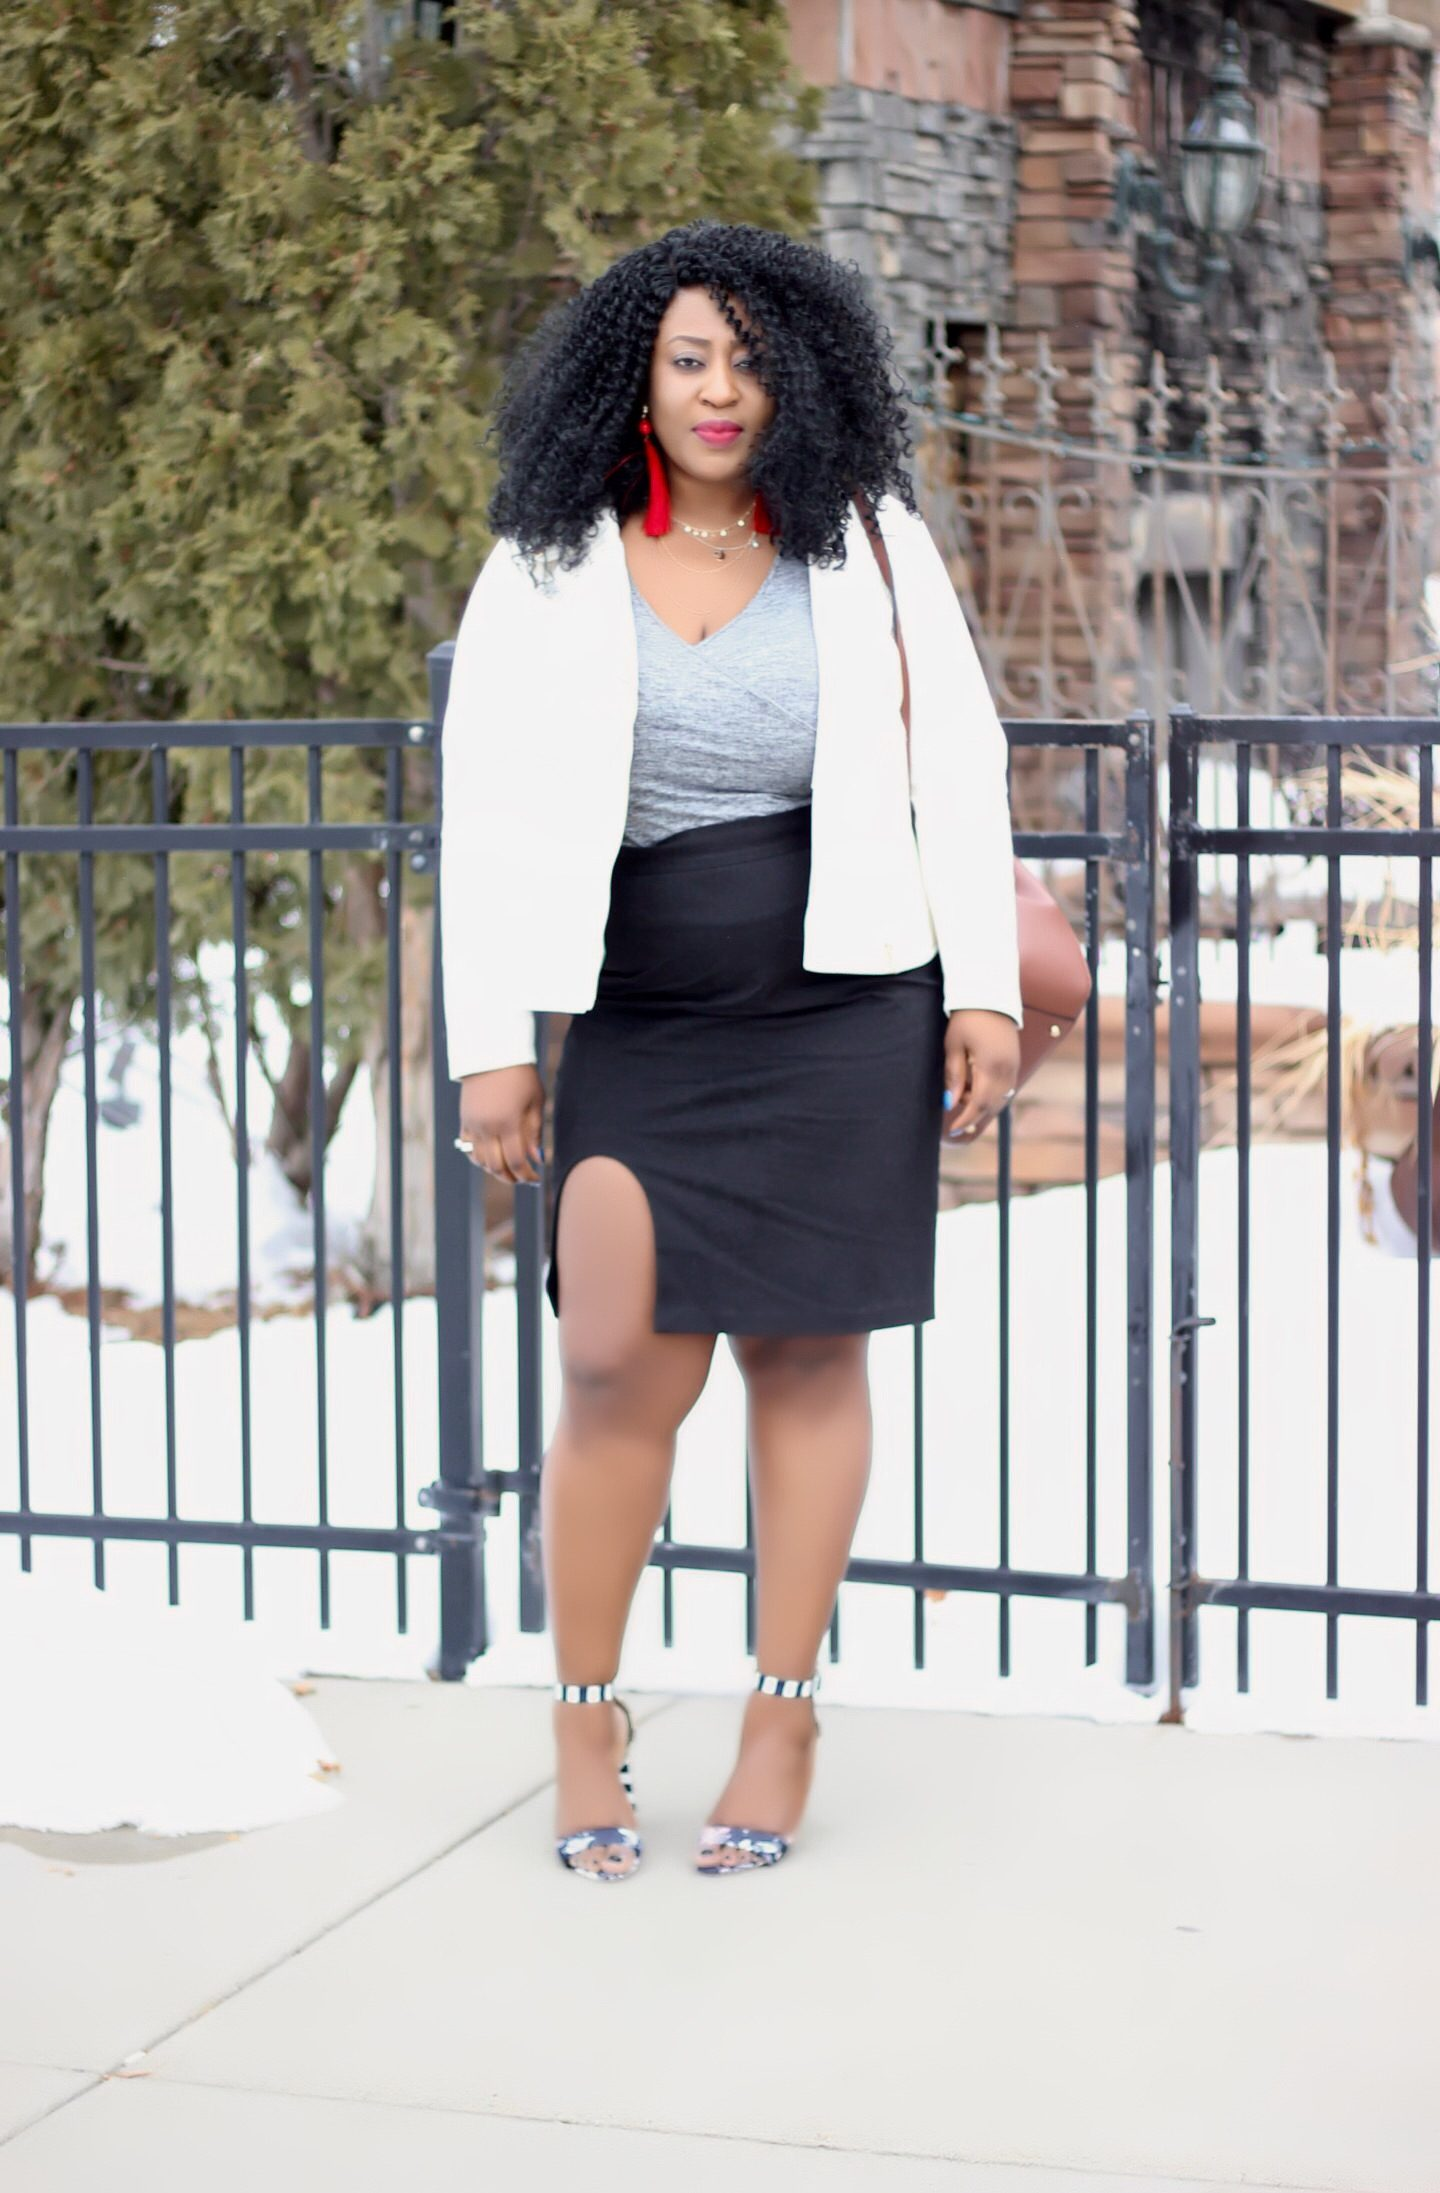 White-jacket-and-black-skirt